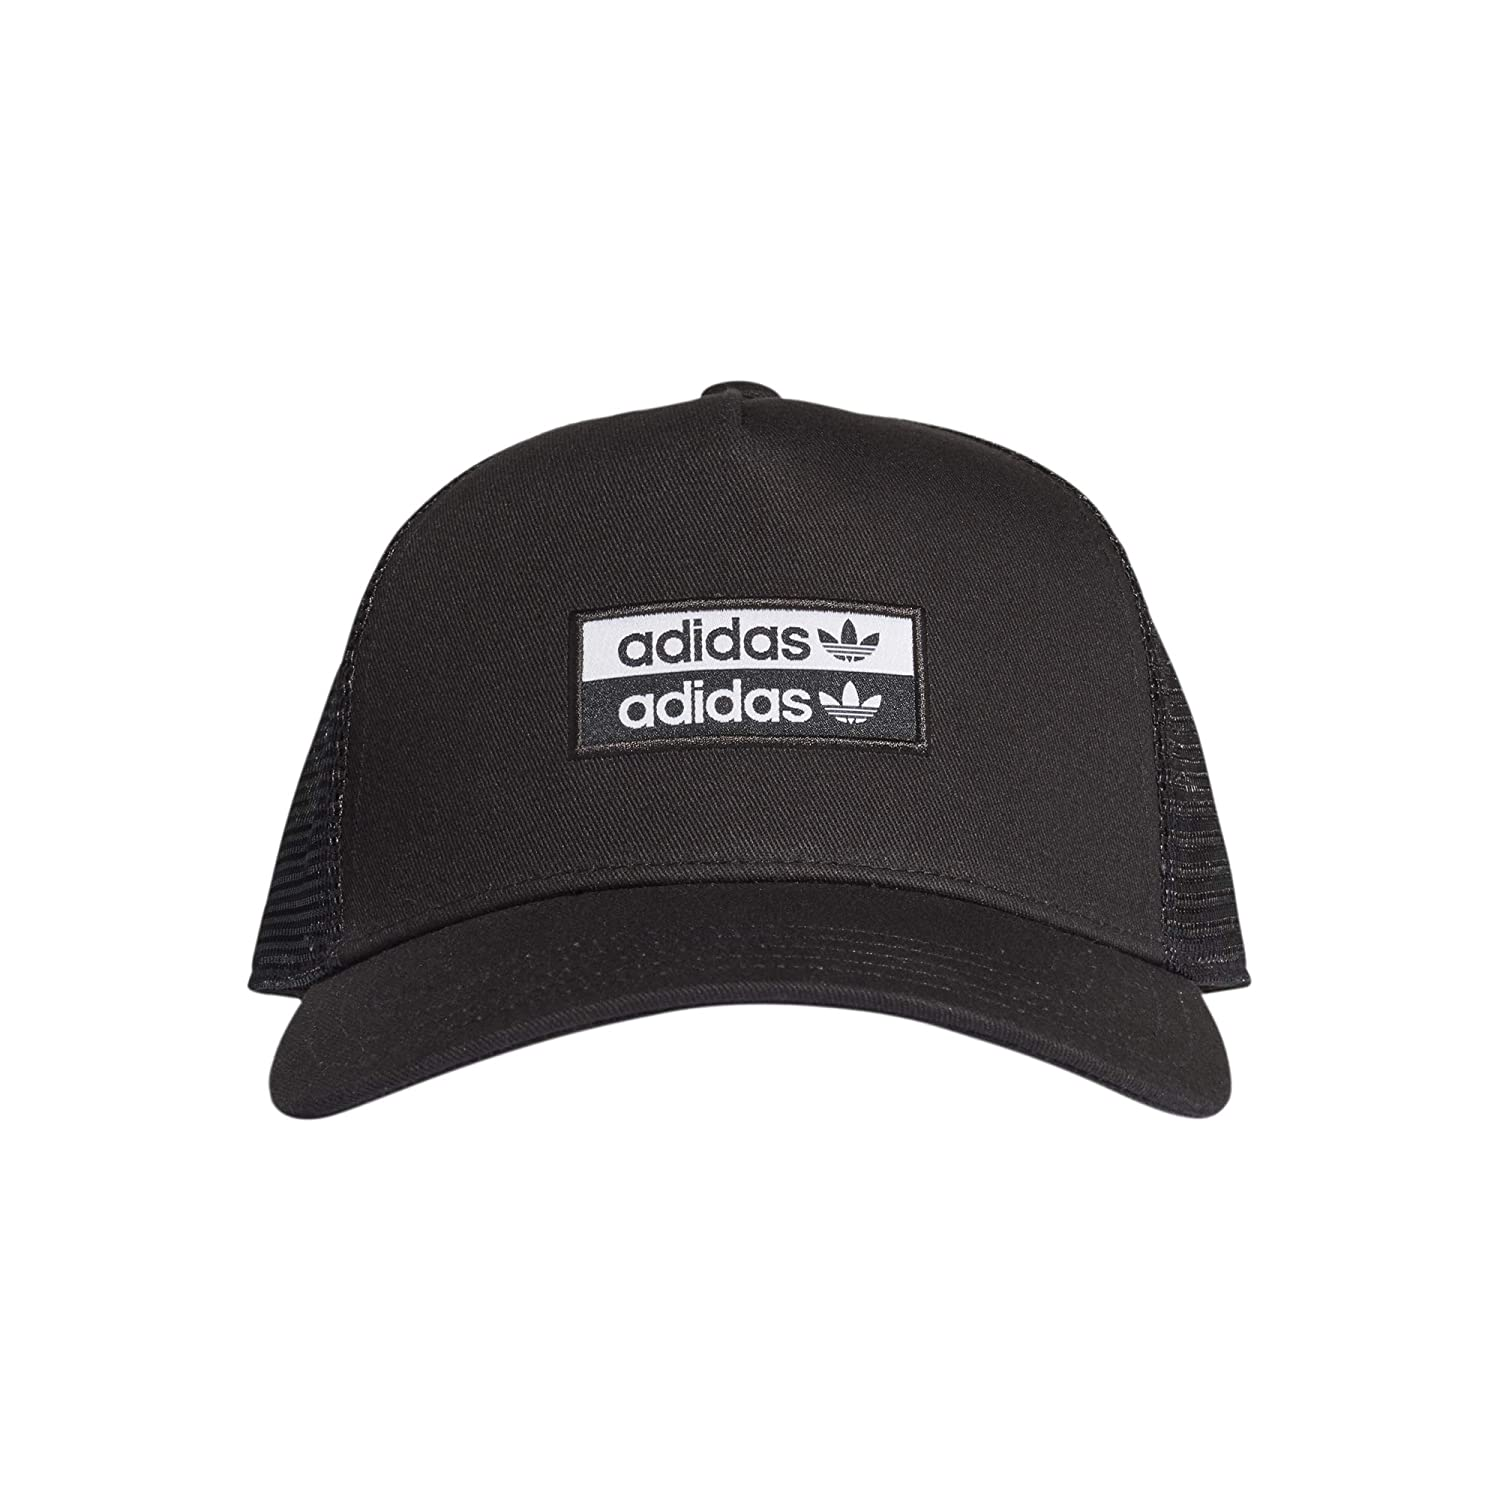 Adidas ORIGINALS Casquette R.Y.V. Trucker: Amazon.es: Deportes y ...